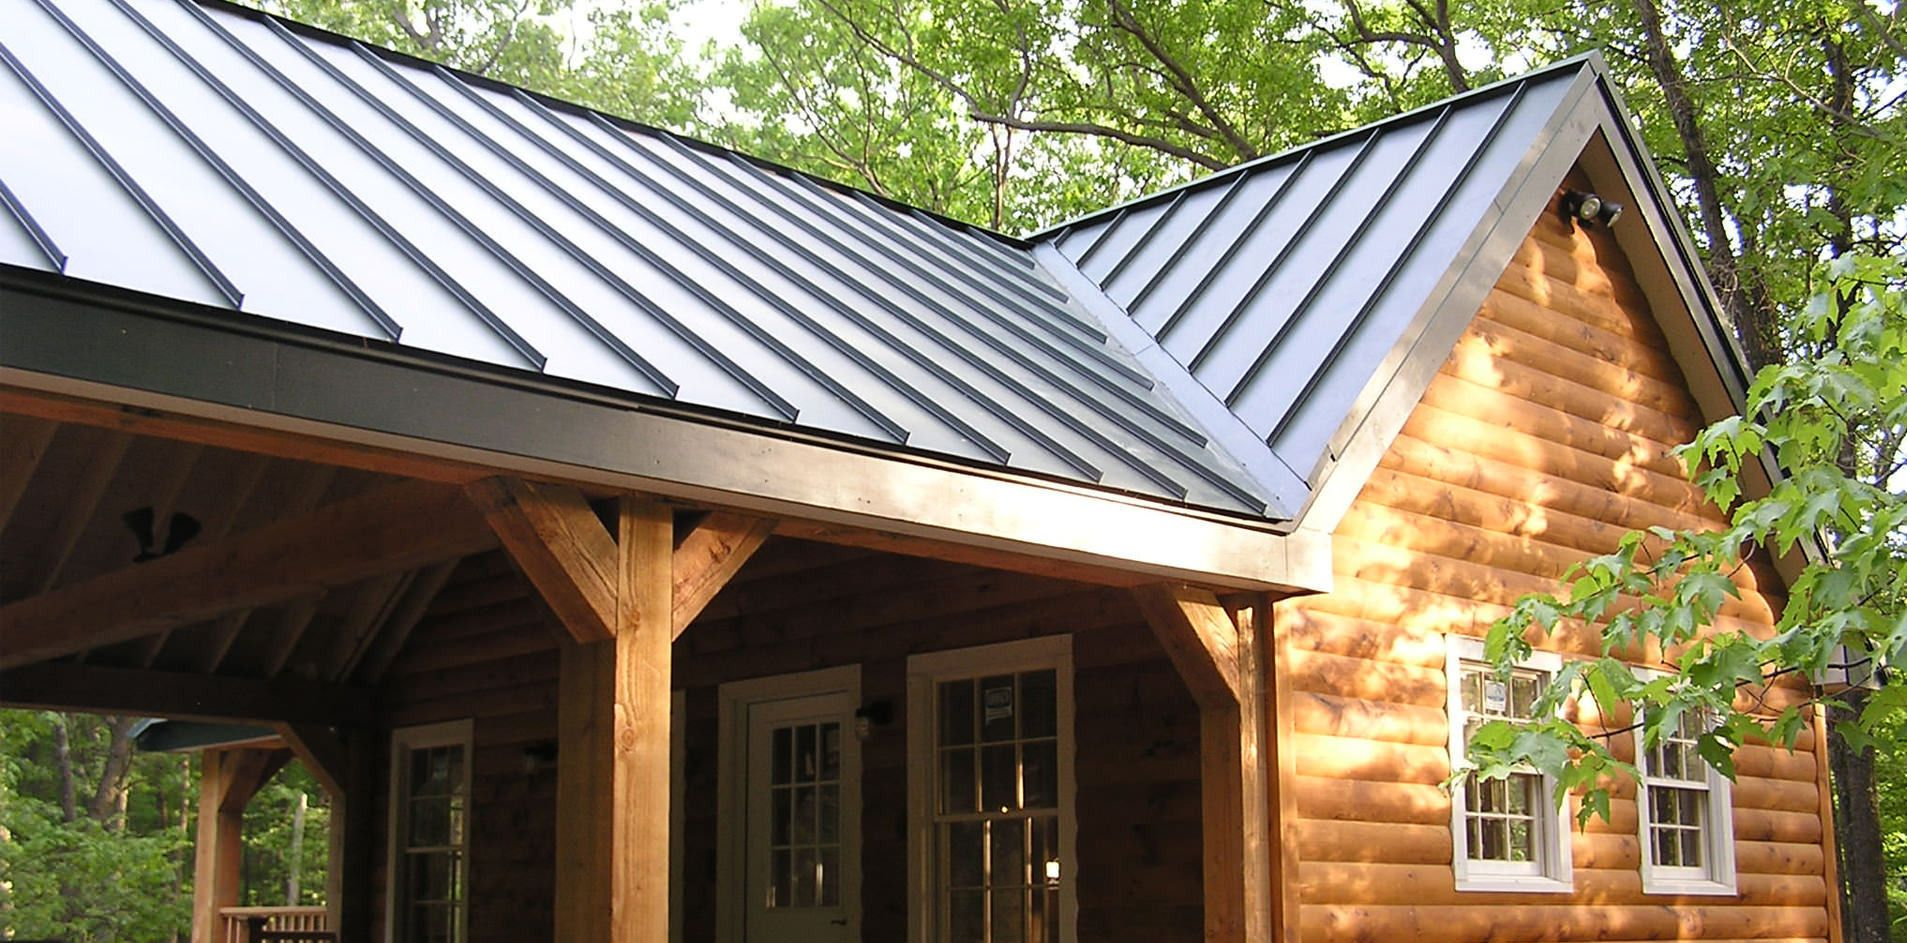 Sheet Metal Roofing Exposed To The Harshest Outdoor Elements Year